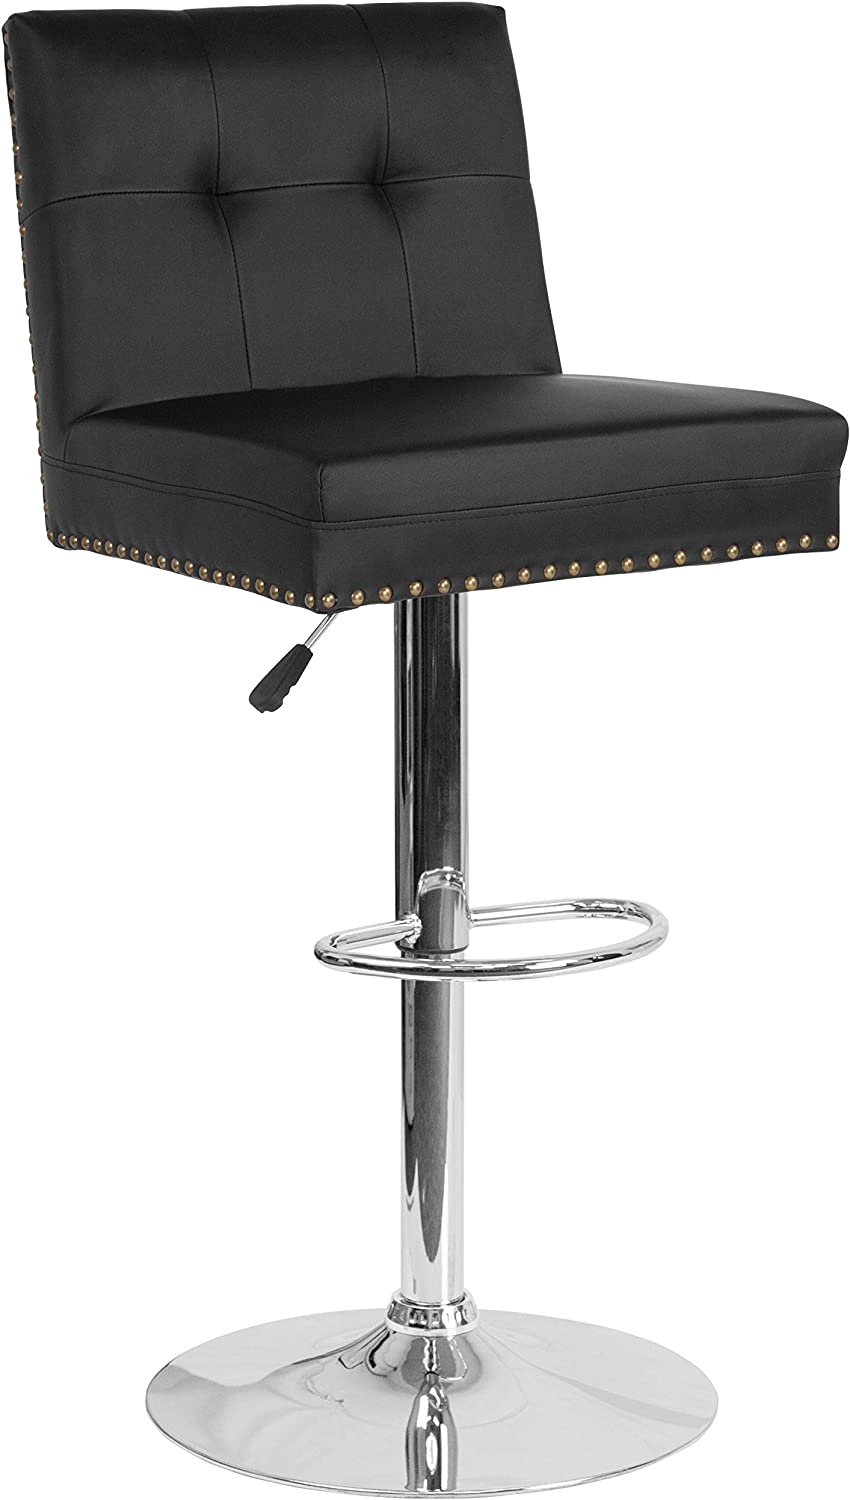 Flash Furniture Ravello Contemporary Adjustable Height Barstool with Accent Nail Trim in Black LeatherSoft